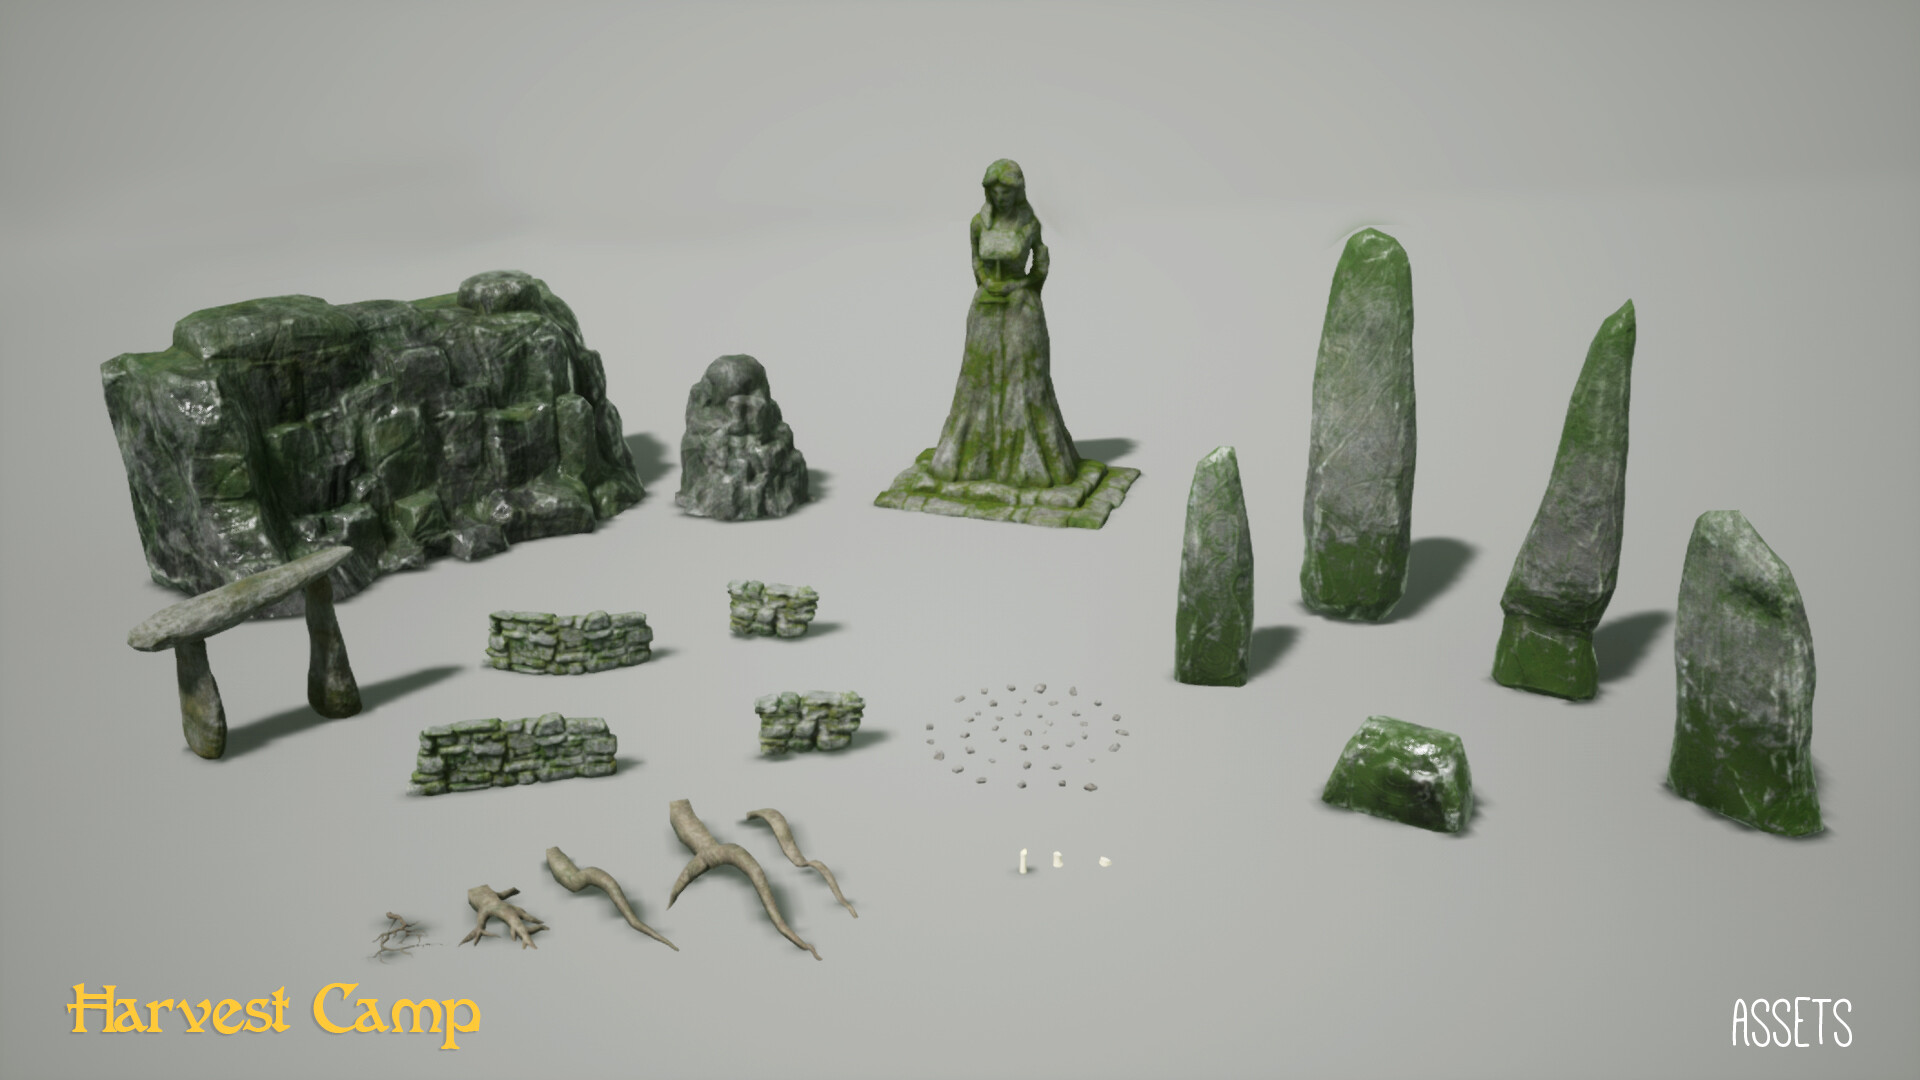 Display of assets that I modelled.